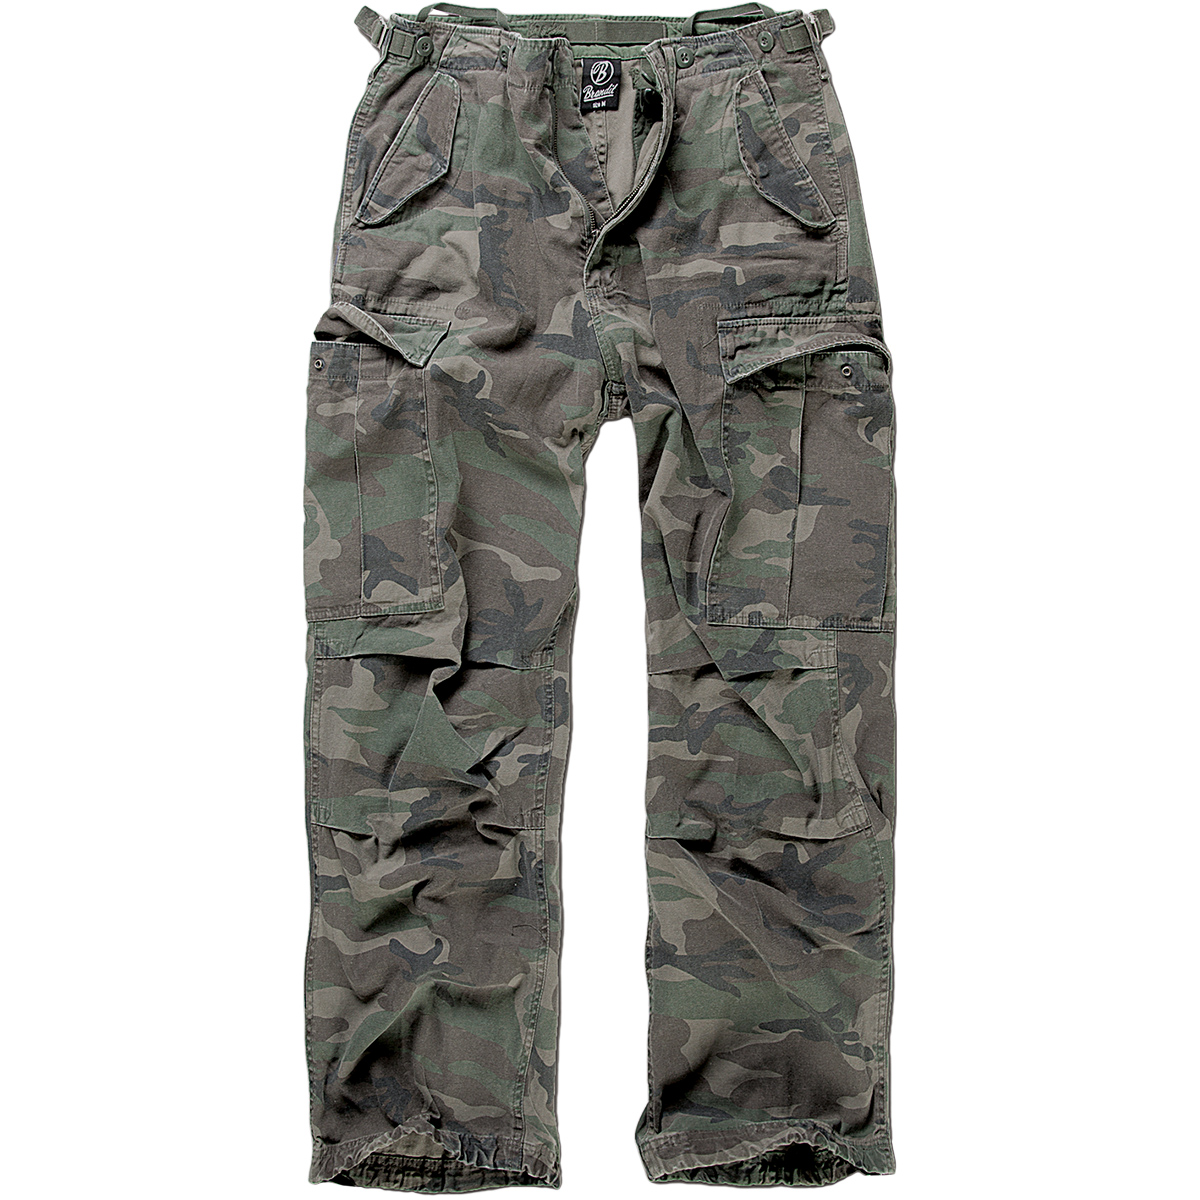 Brand New US M65 Style Army Cargo Vintage Combat Trousers Pants